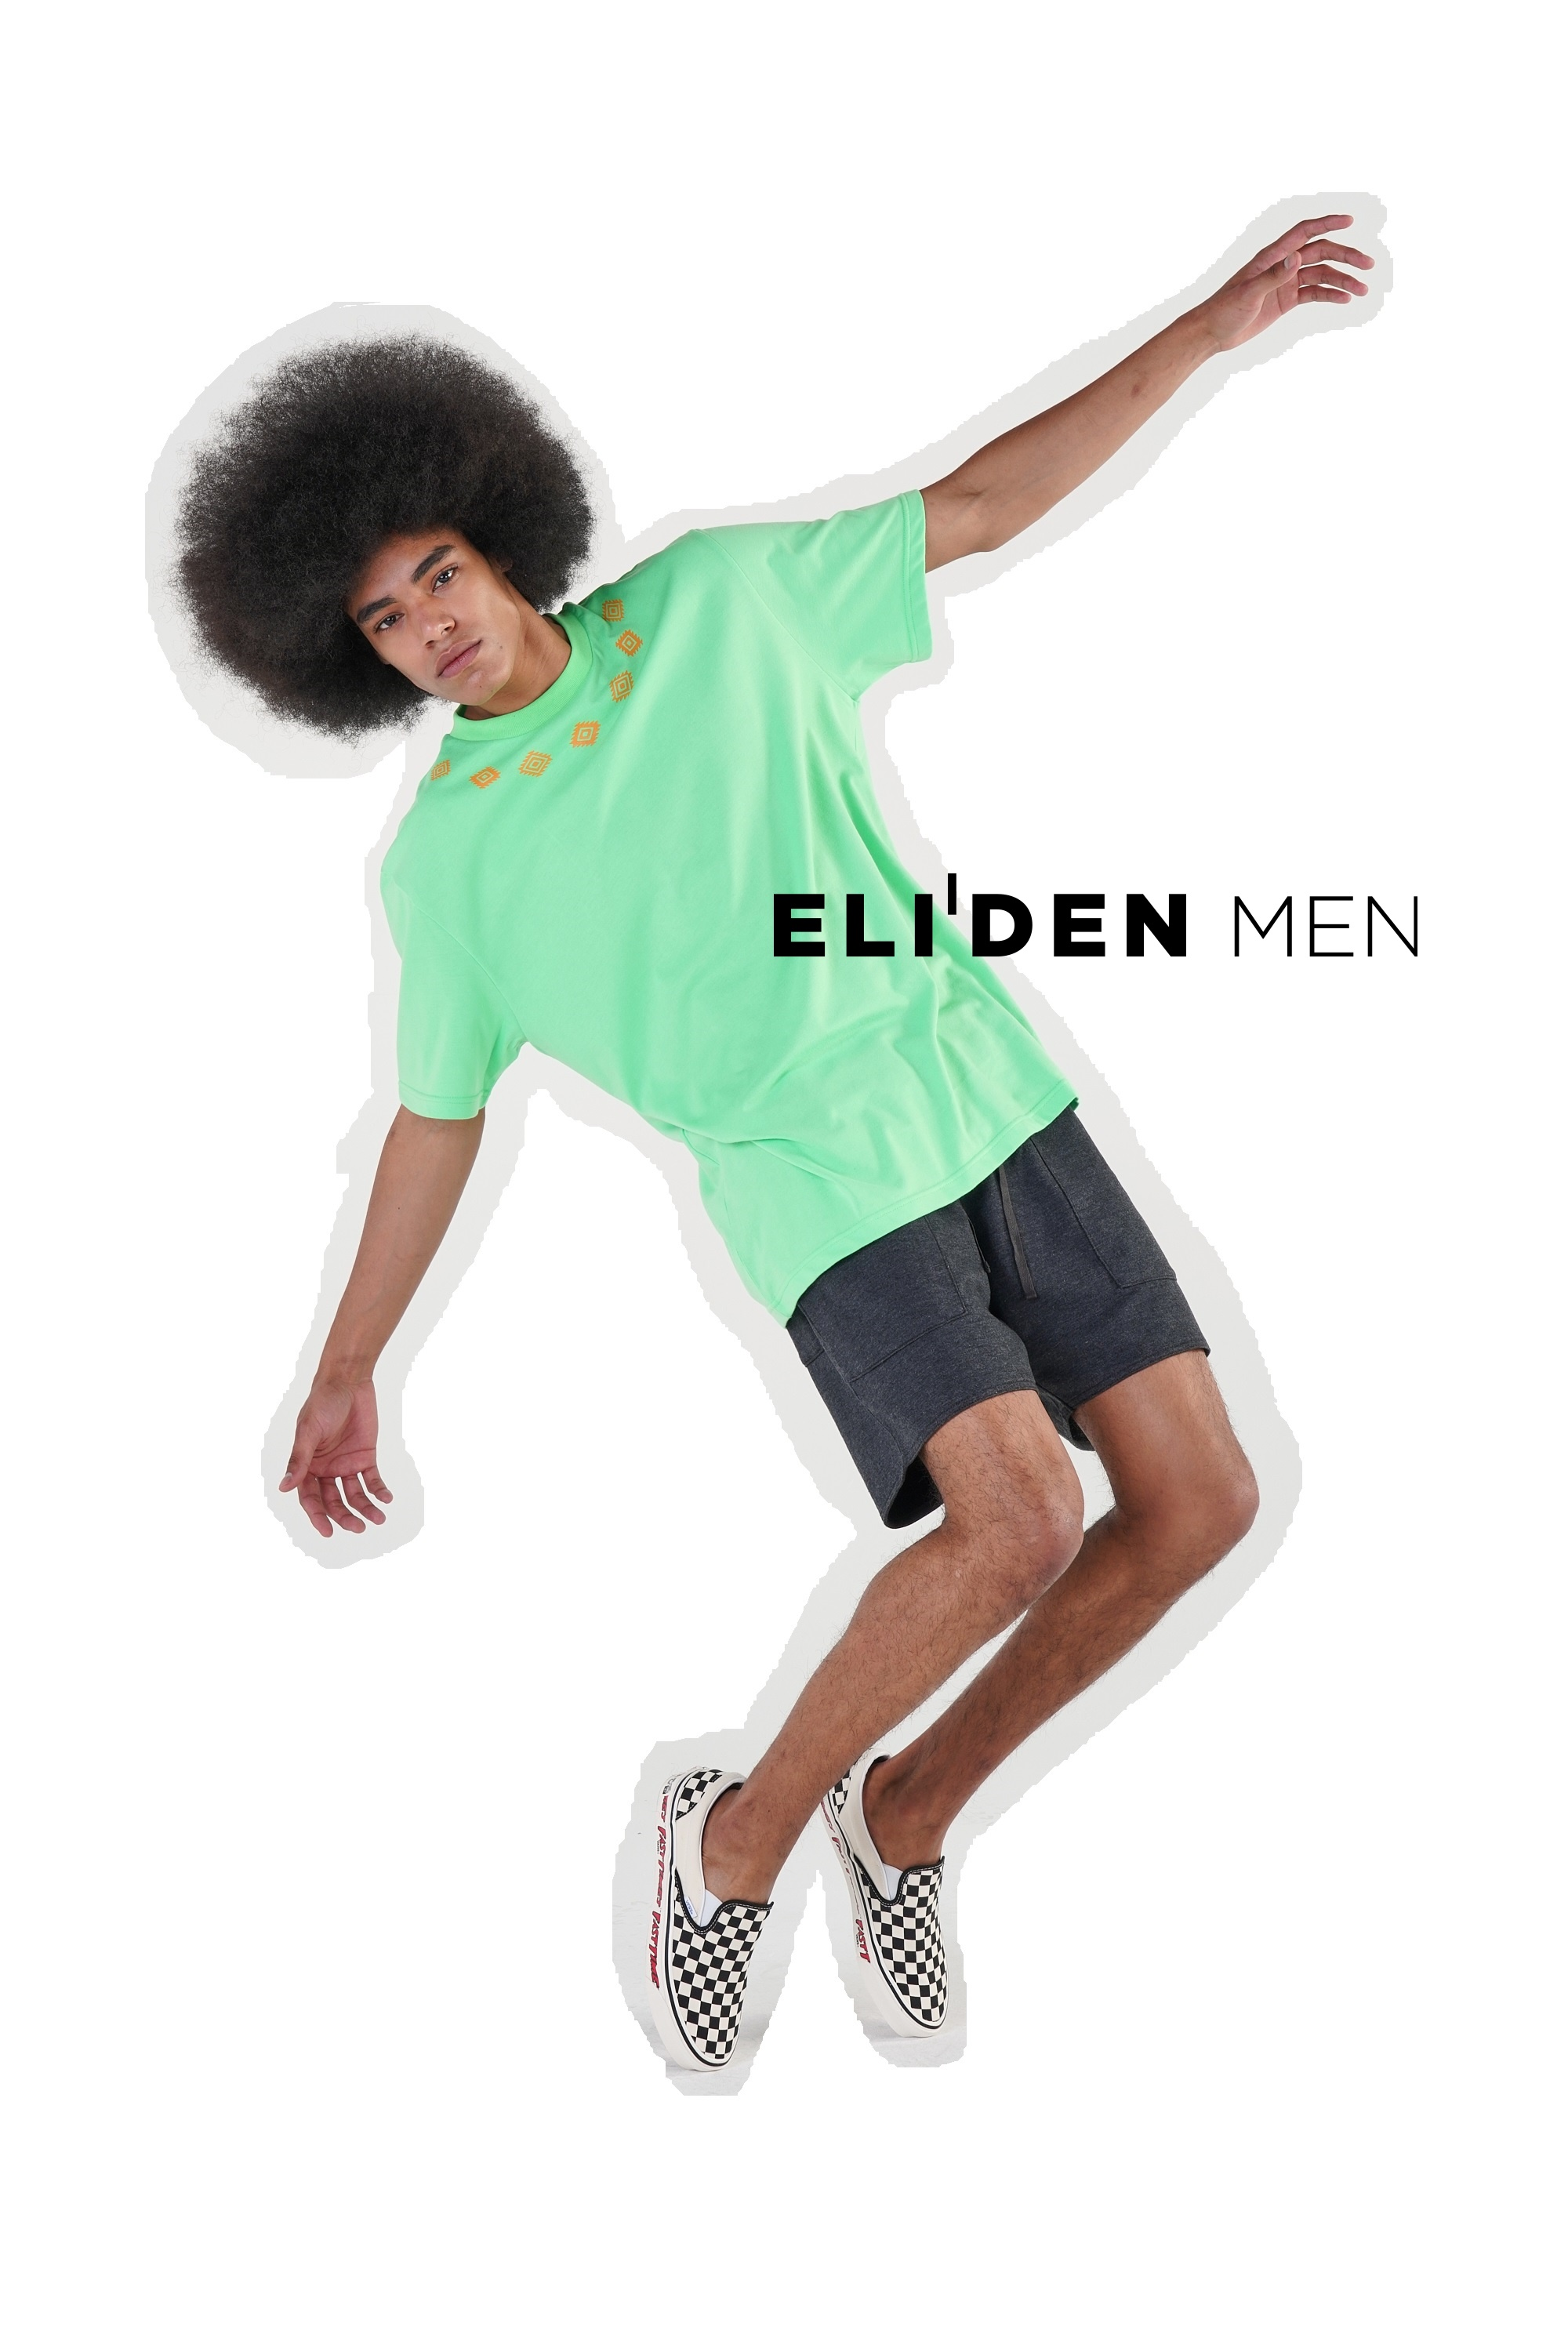 ELIDENMEN 20 S/S LOOKBOOK 1